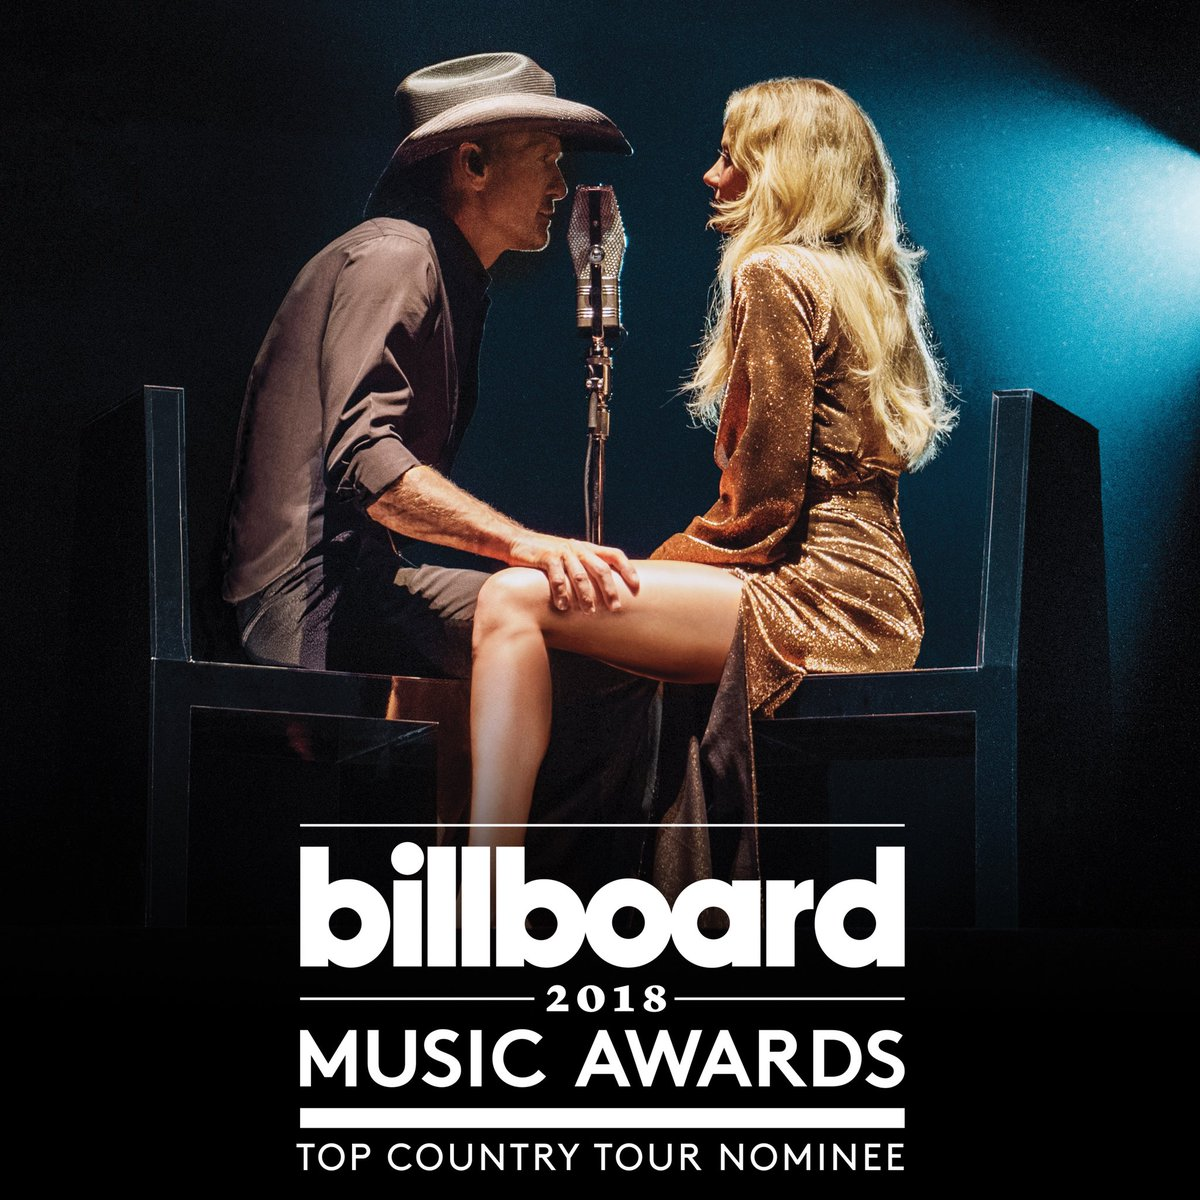 We are honored #Soul2Soul has been nominated for the 2018 @BBMAs! Catch the show May 20th on NBC. #BBMAs https://t.co/2UXL2lTGEF